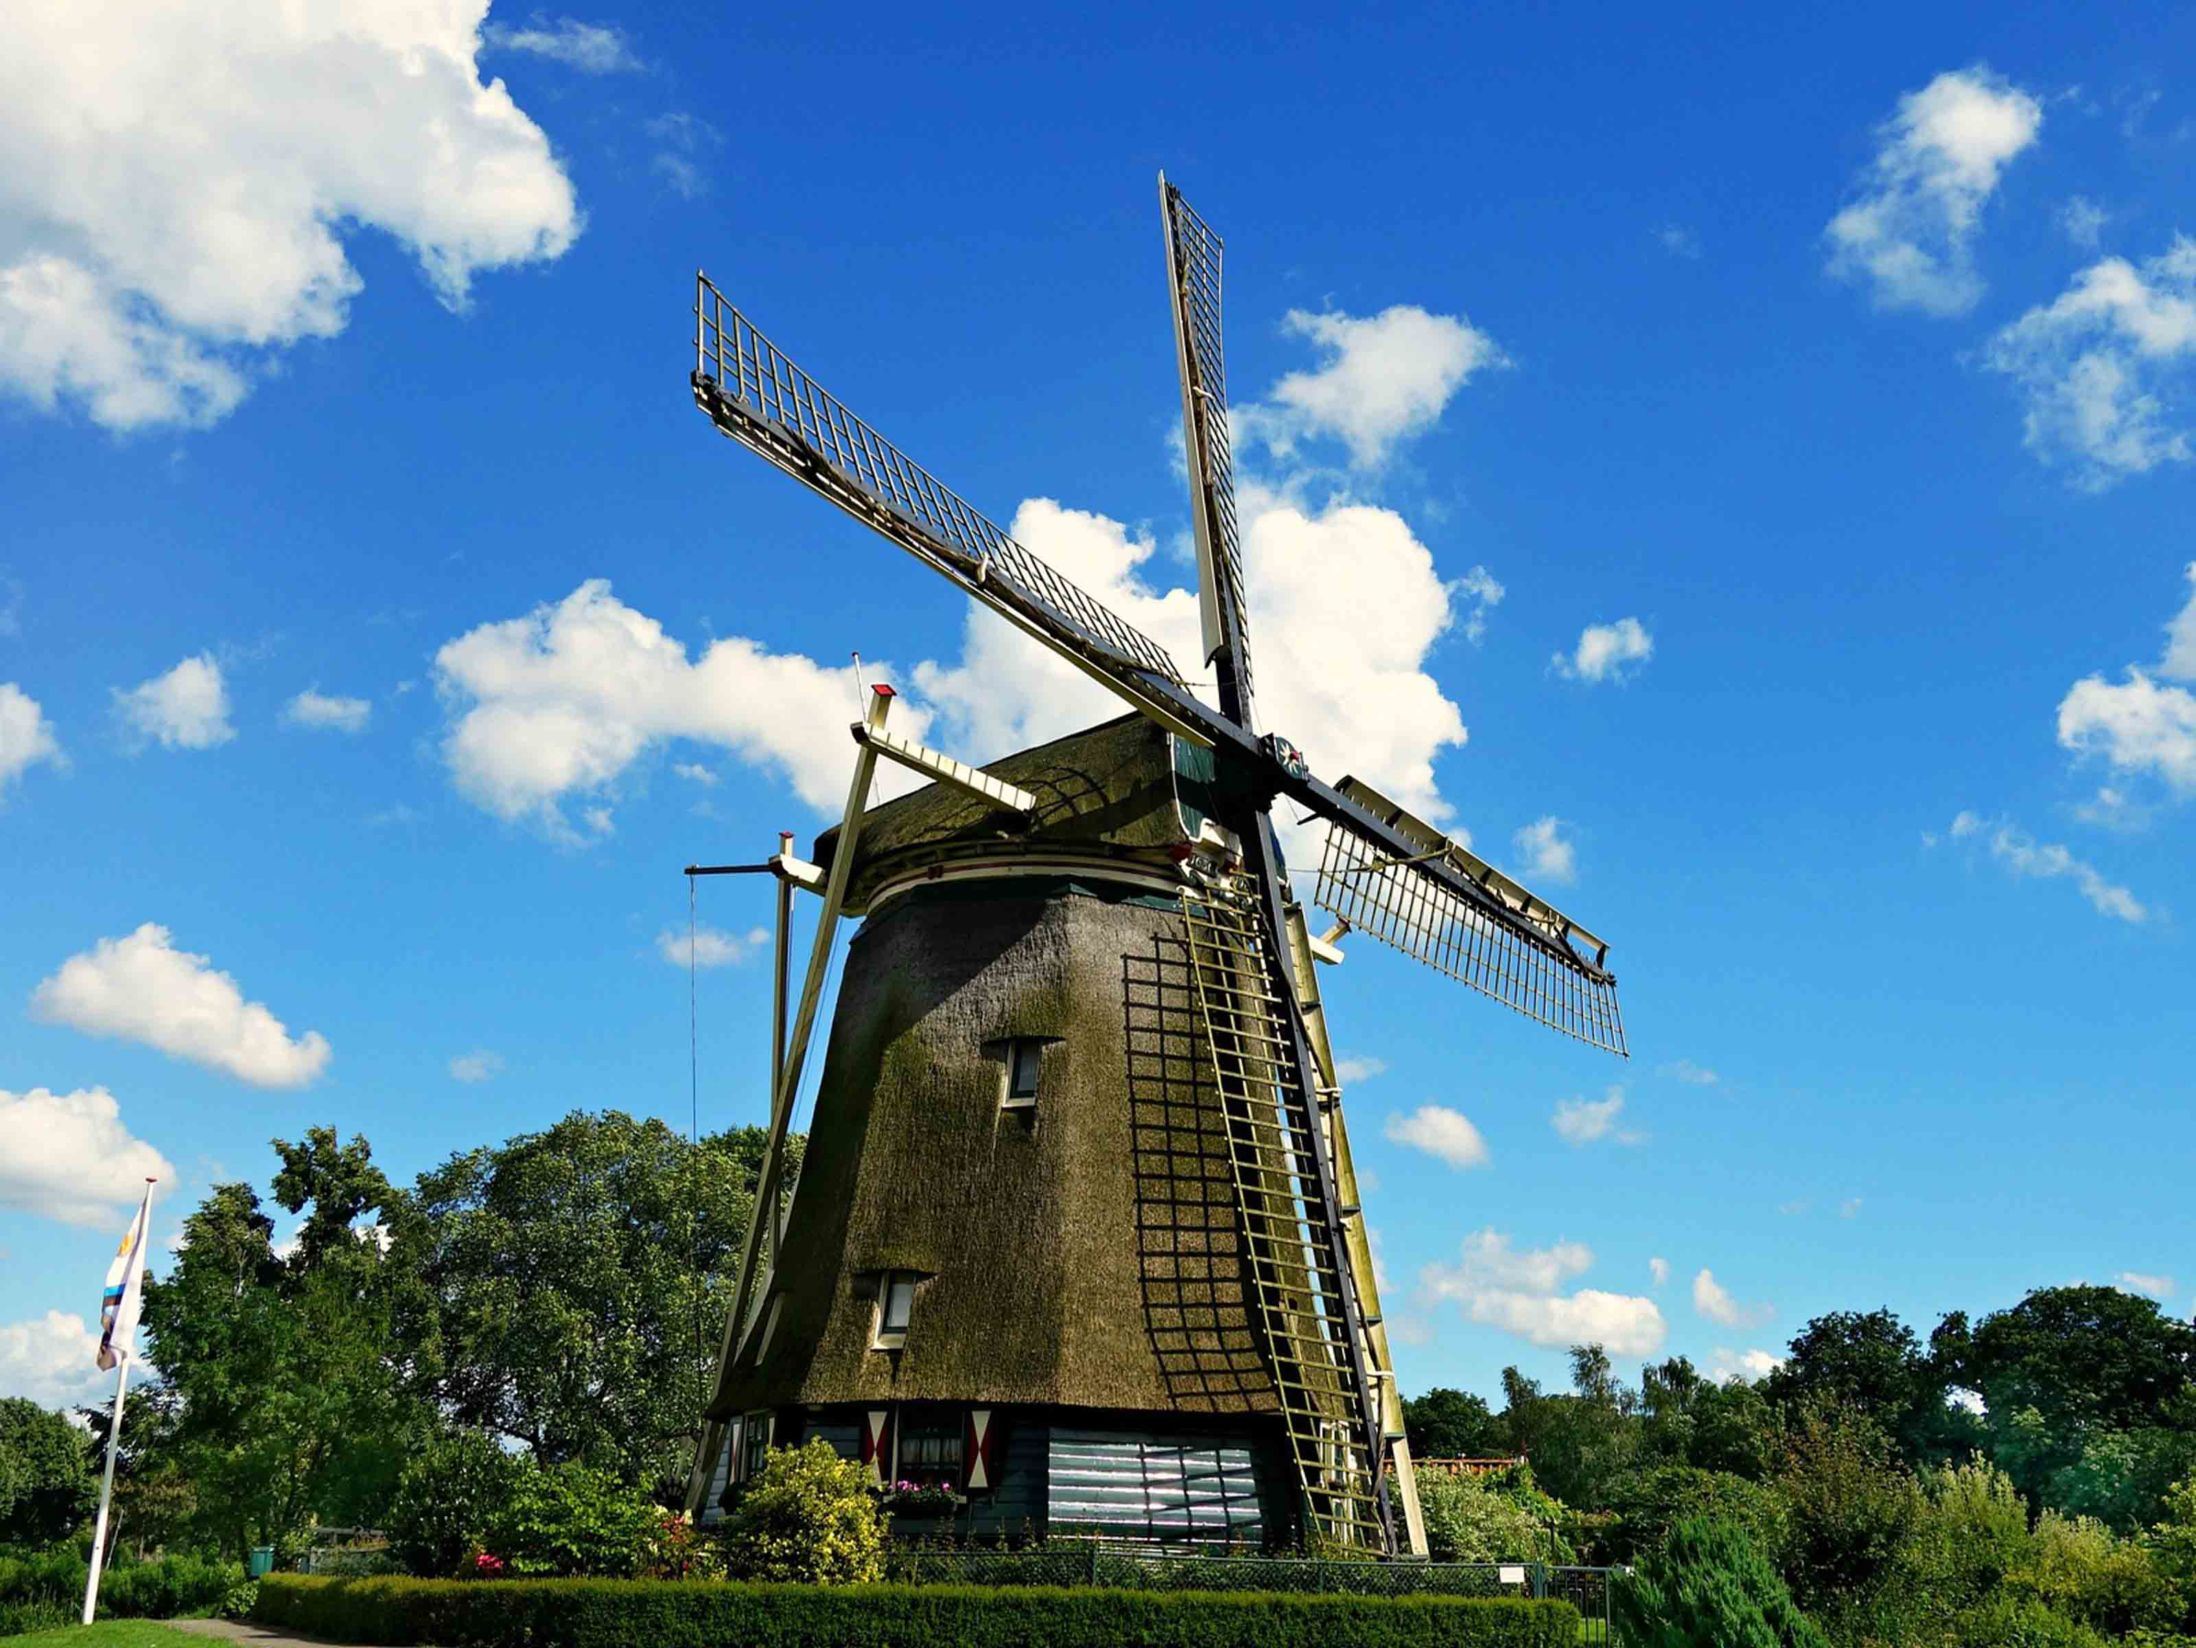 Top Attractions in Amsterdam - Windmills